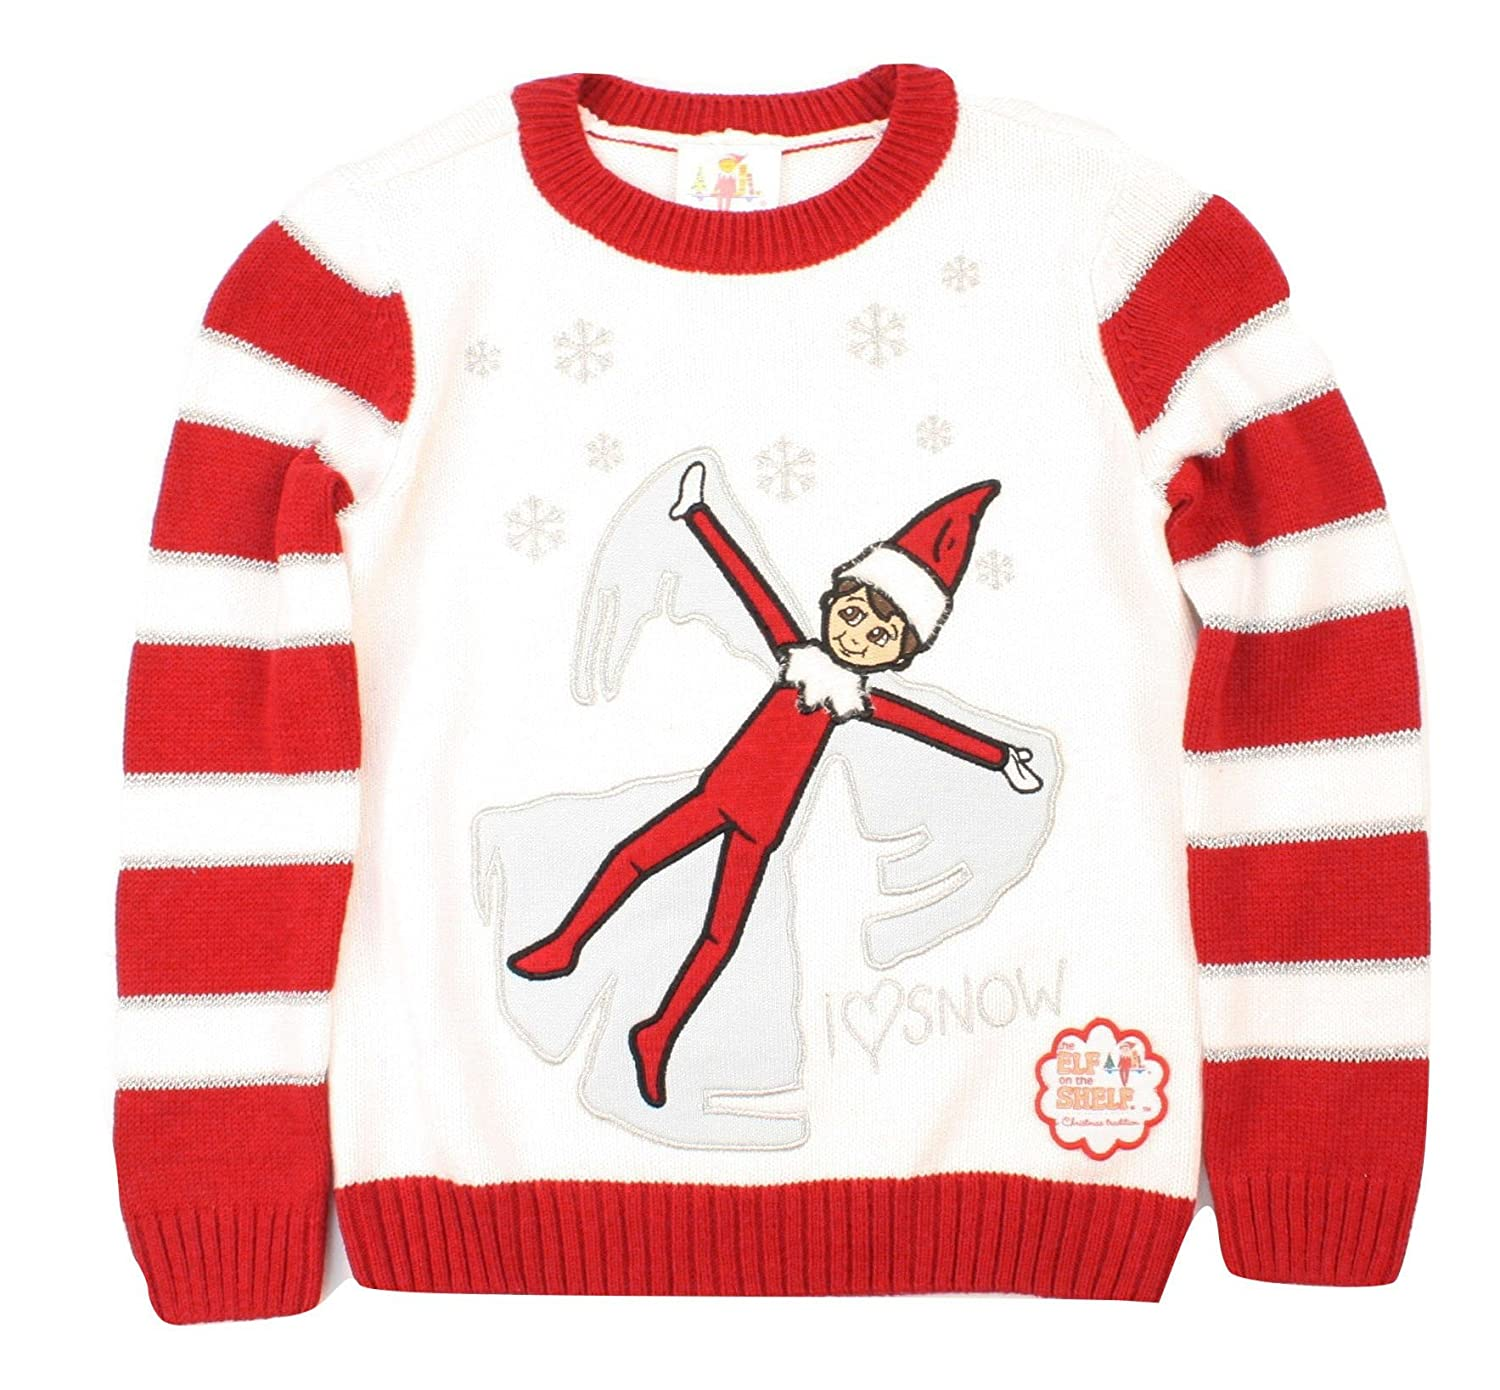 Ugly Christmas Sweater Kid's The Elf On The Shelf Pullover Sweatshirt-4 SXE7-1940BMG2-WINTER WHT-4